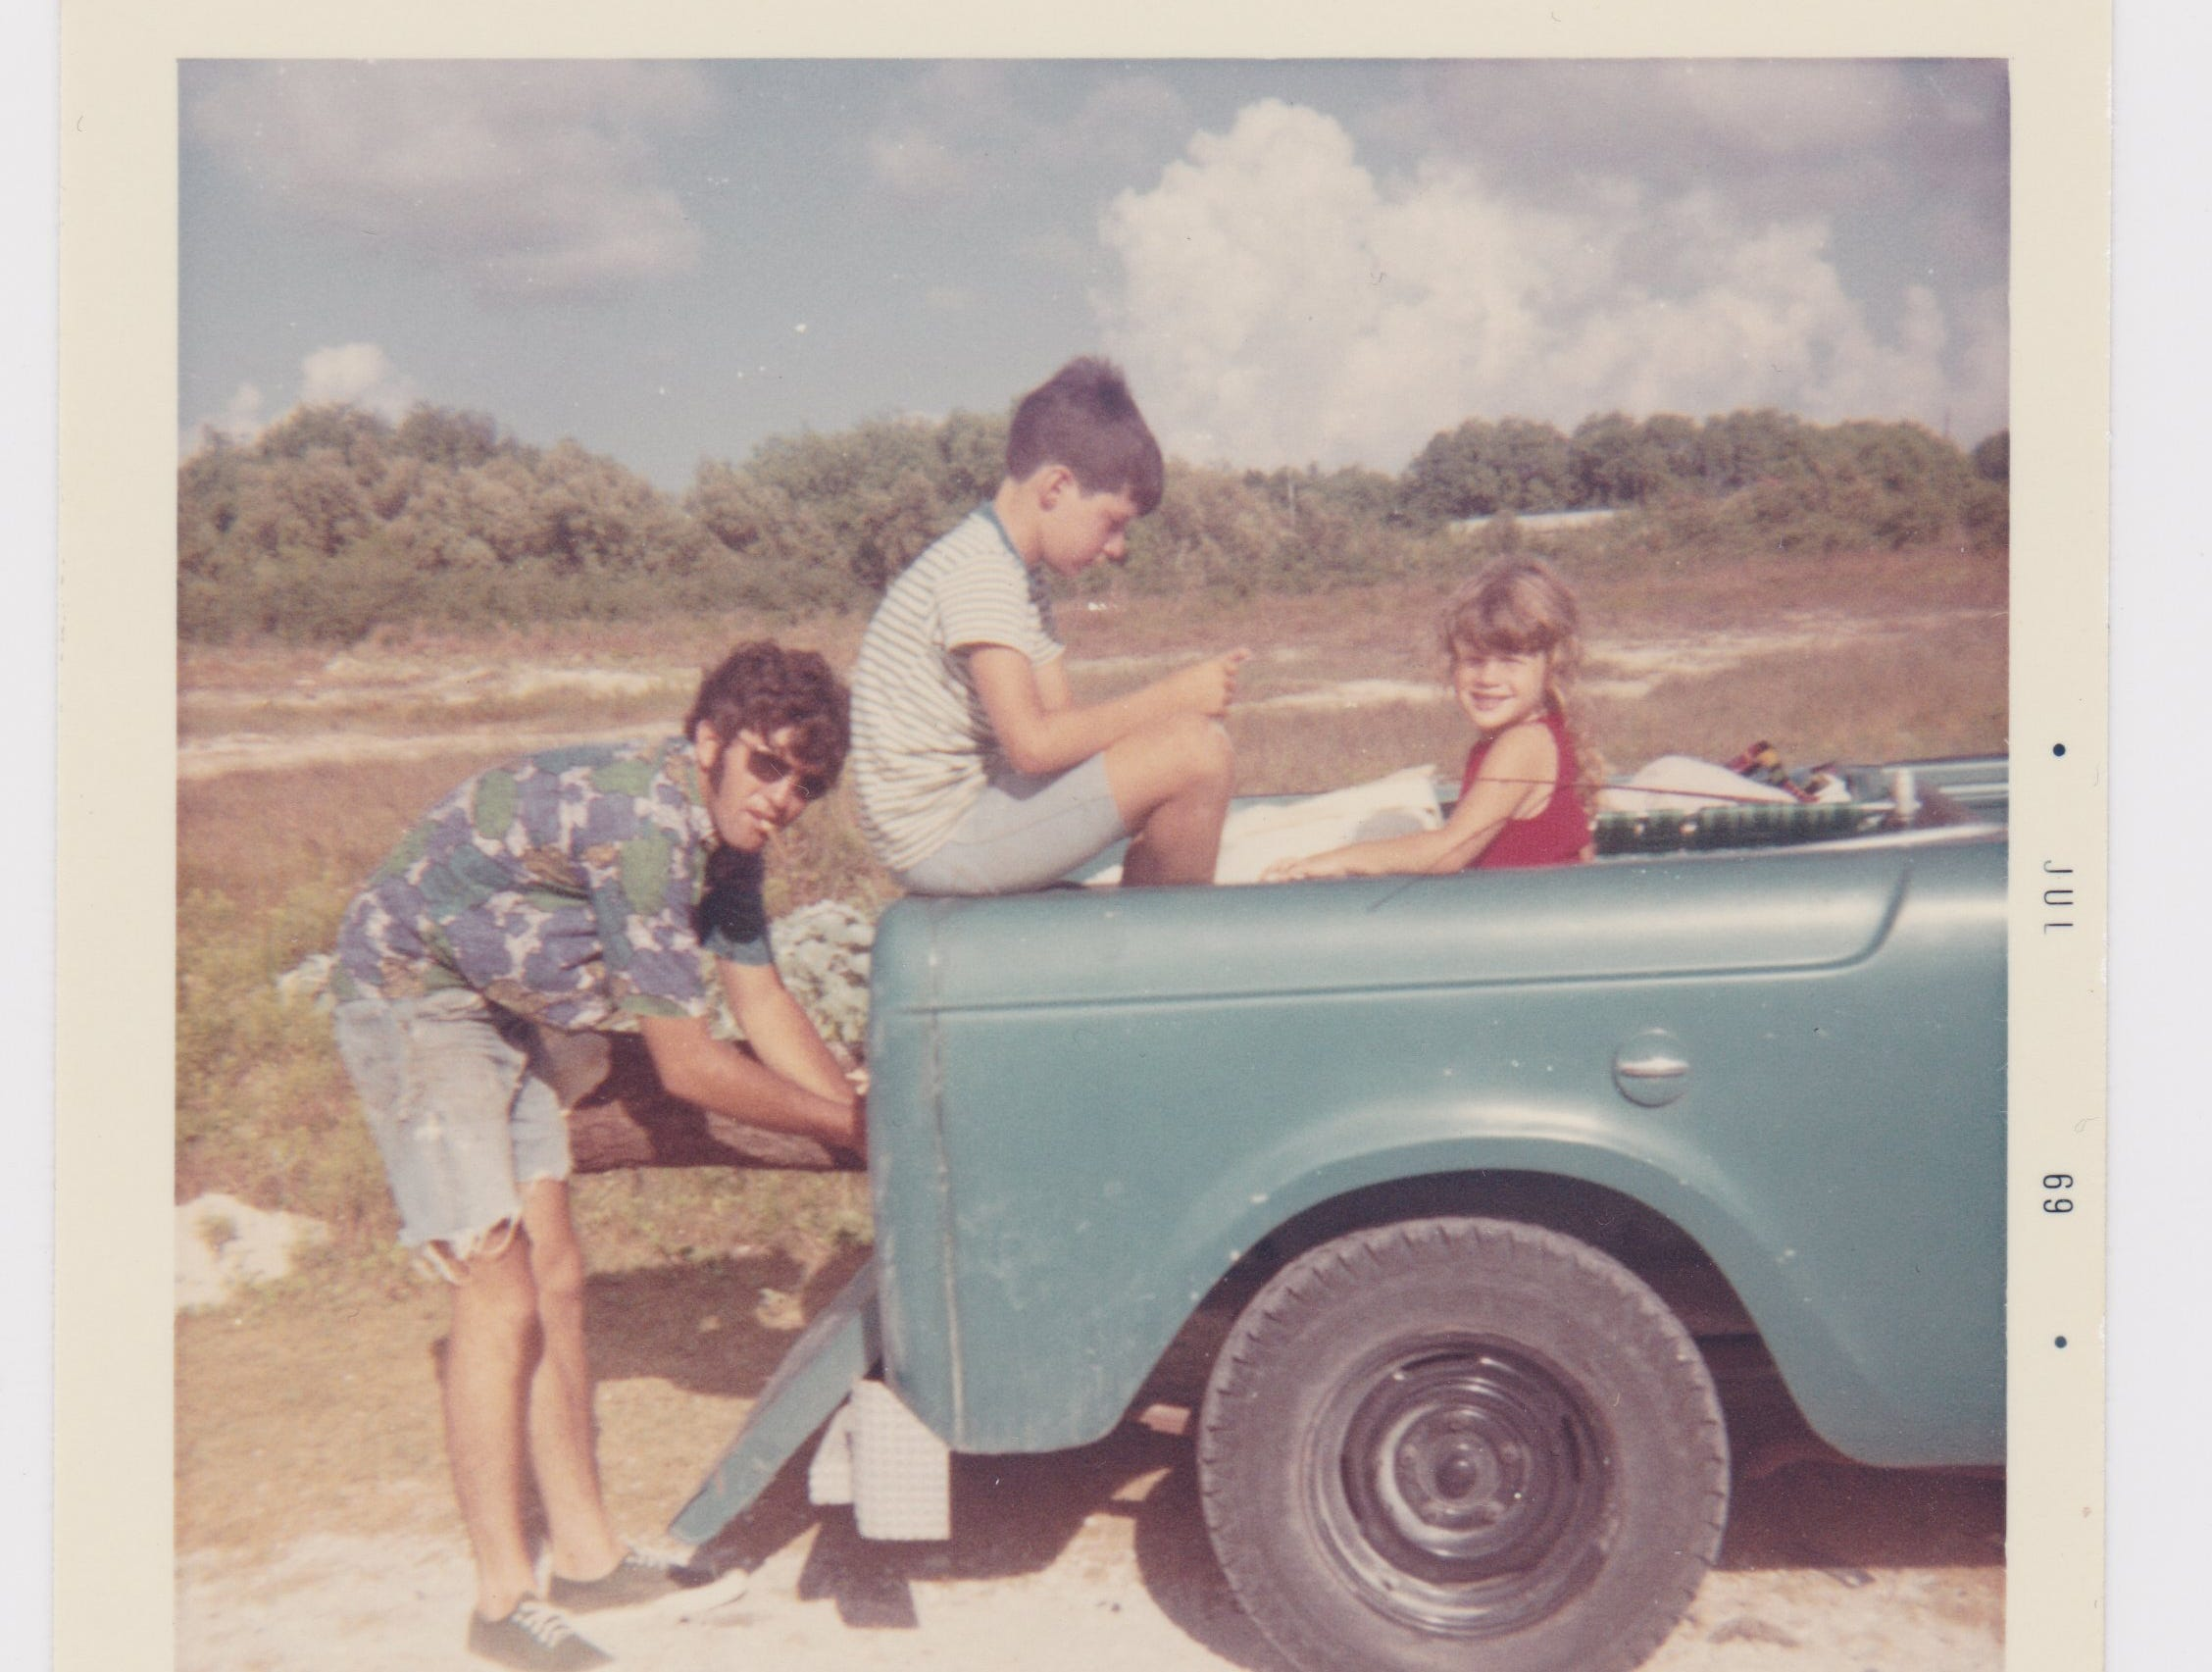 Tony Joe White (left) often spent time on Padre Island fishing and boating when not performing his signature brand of swamp rock at nightclubs in Corpus Christi and Kingsville. Pictured in the back of the pickup are his oldest son Jim Bob and daughter Michelle.